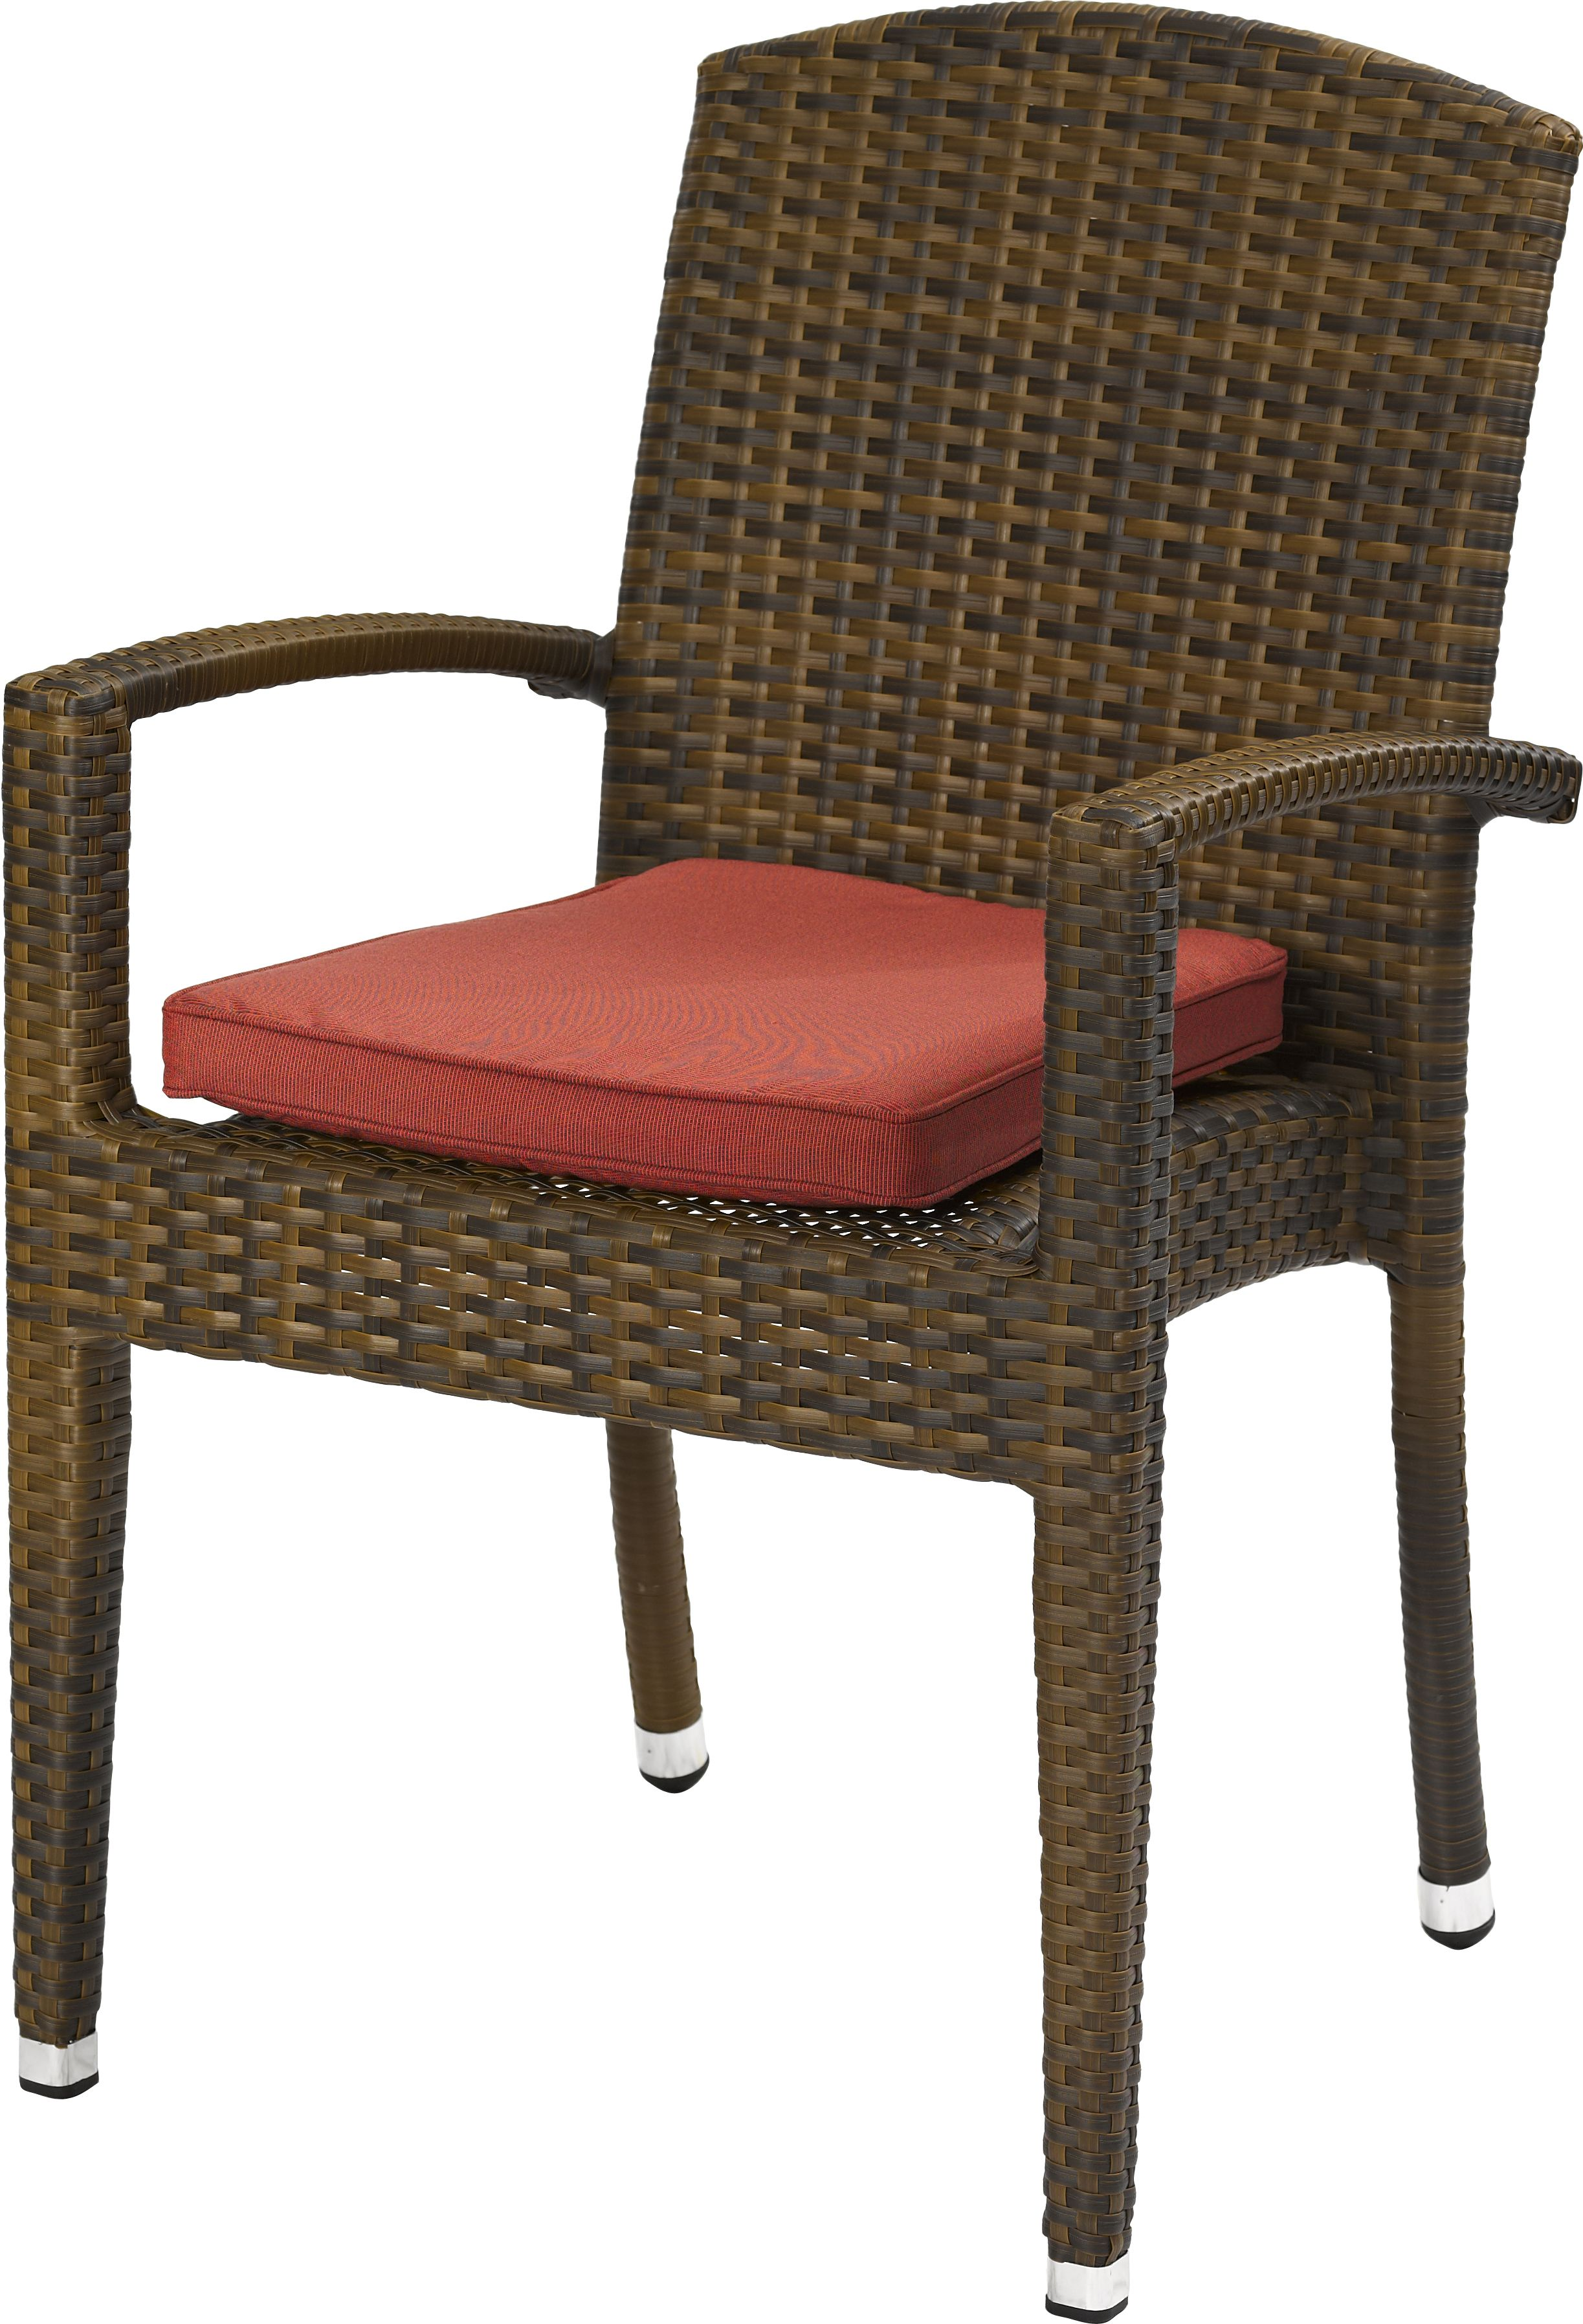 Lounge Sessel Outdoor Outdoor Lounge Sessel Favori Stapelbar Burned Mit Armlehnen